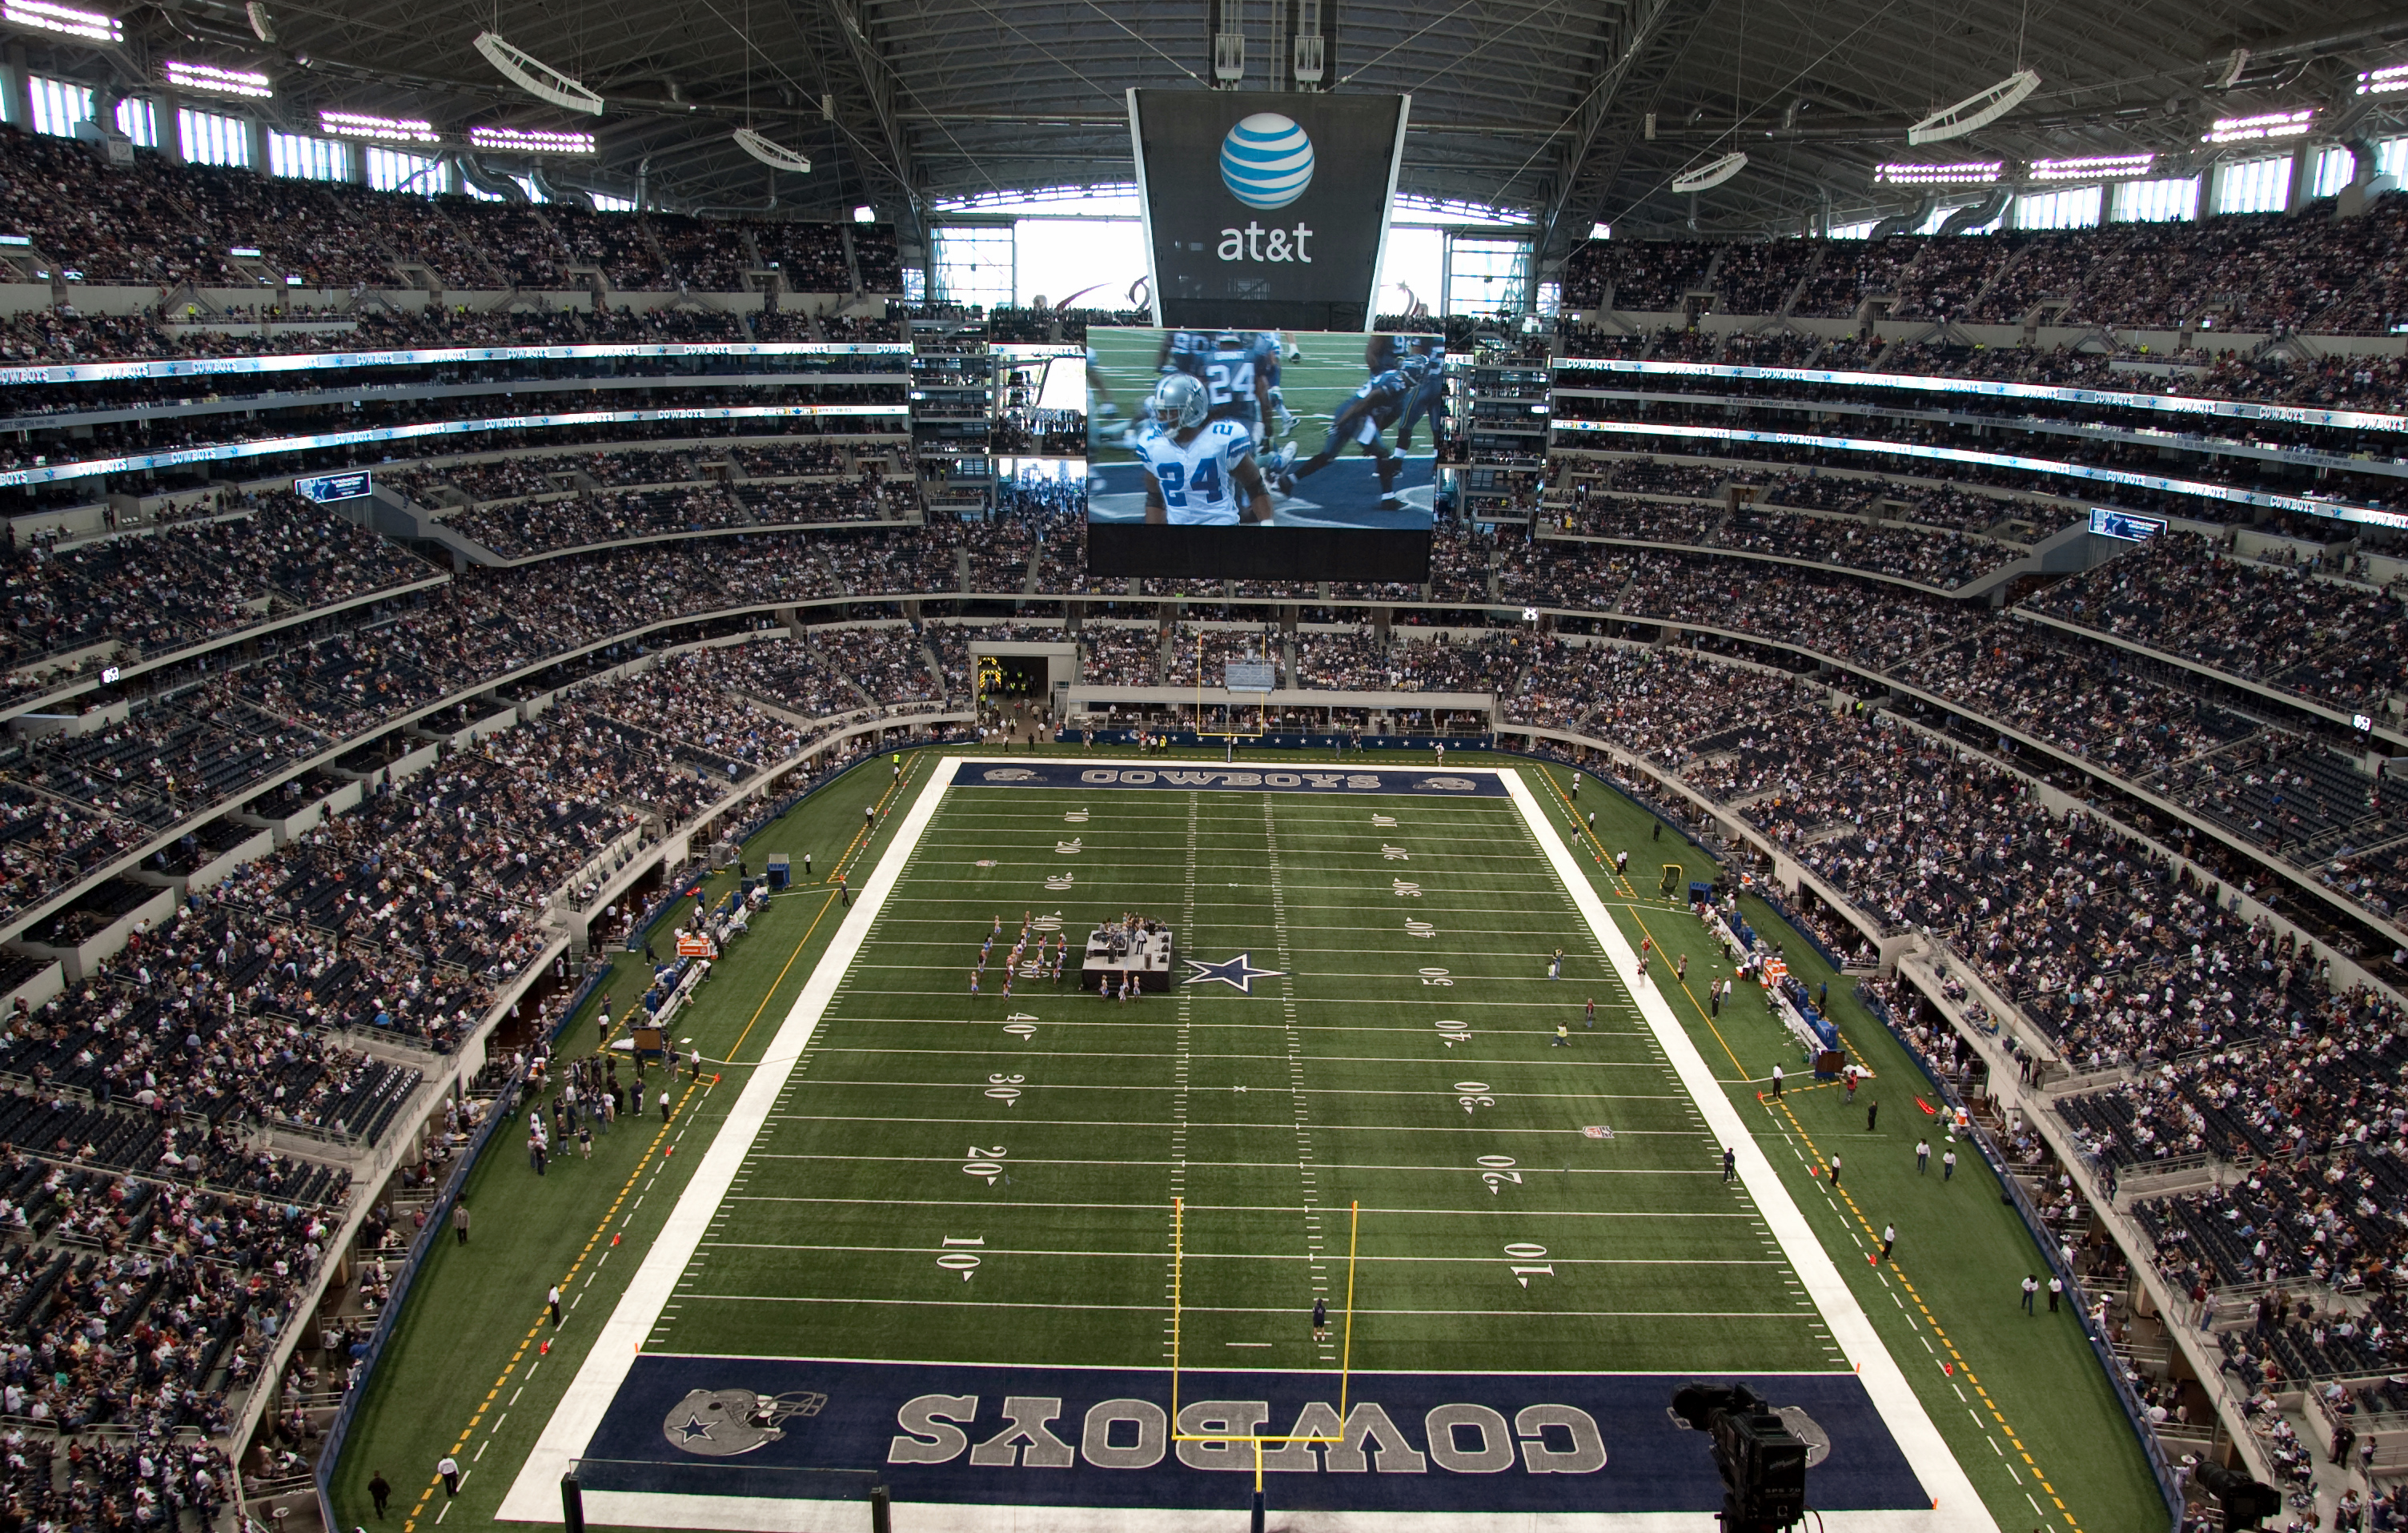 http://upload.wikimedia.org/wikipedia/commons/4/4f/Cowboys_Stadium_field.jpg